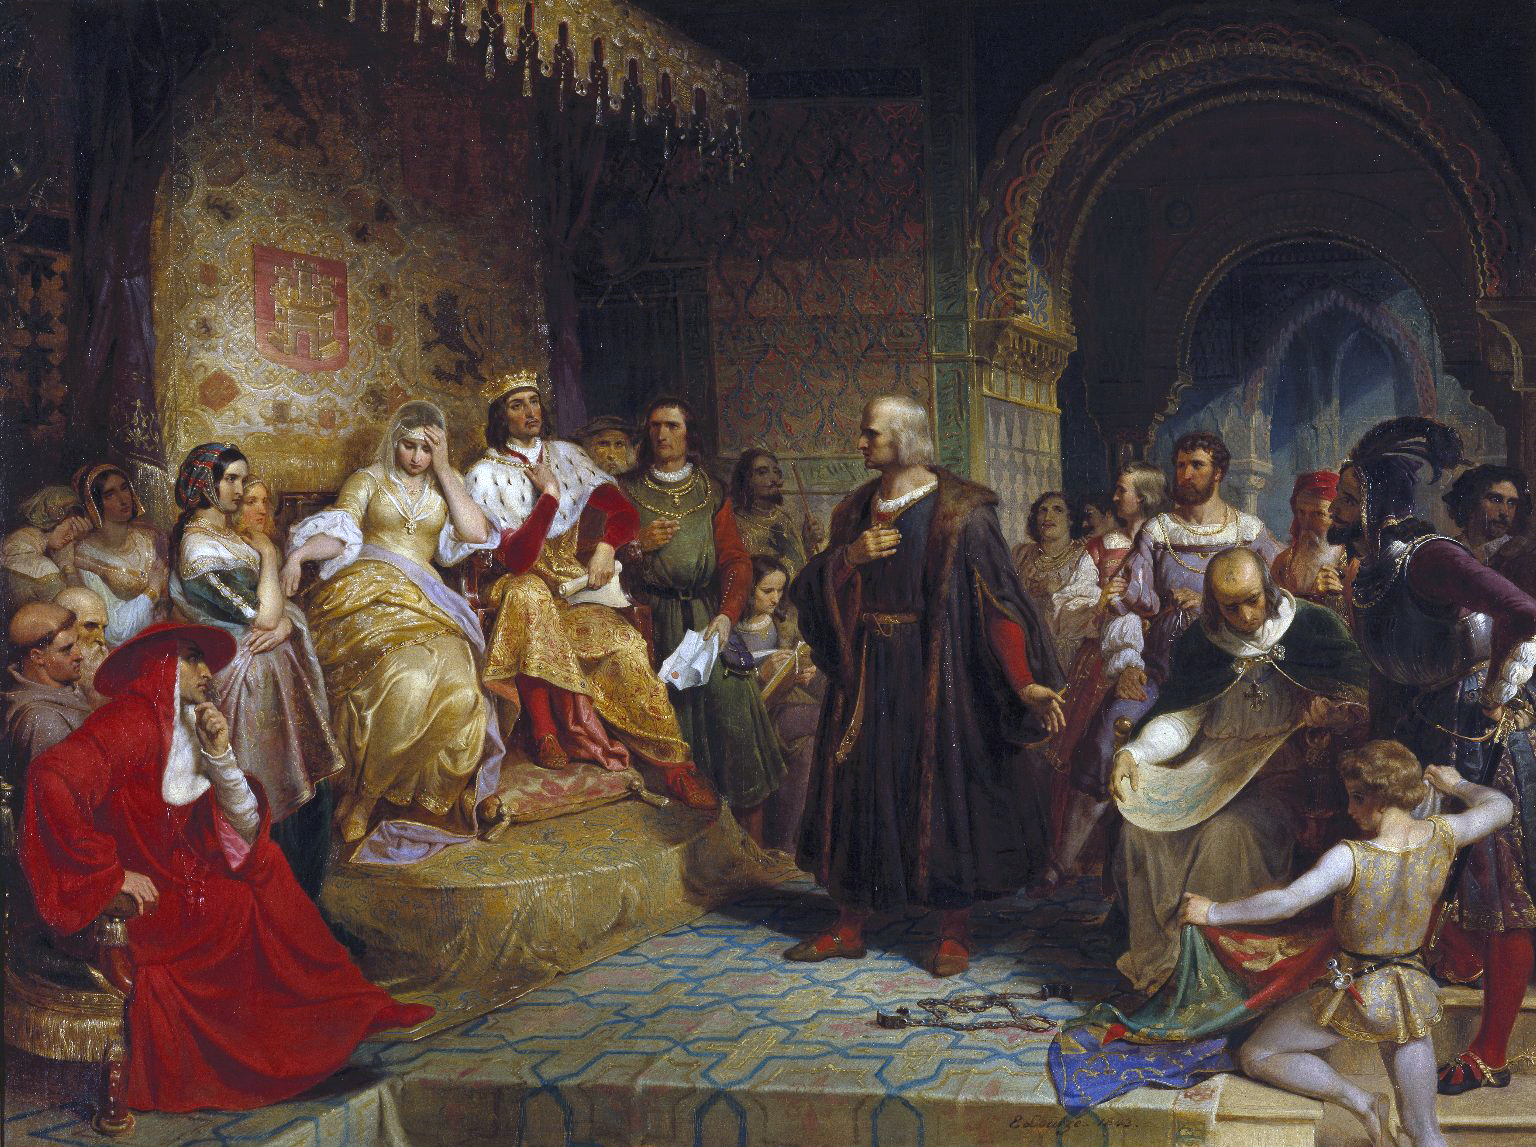 https://upload.wikimedia.org/wikipedia/commons/9/99/Emanuel_Gottlieb_Leutze_-_Columbus_Before_the_Queen.JPG